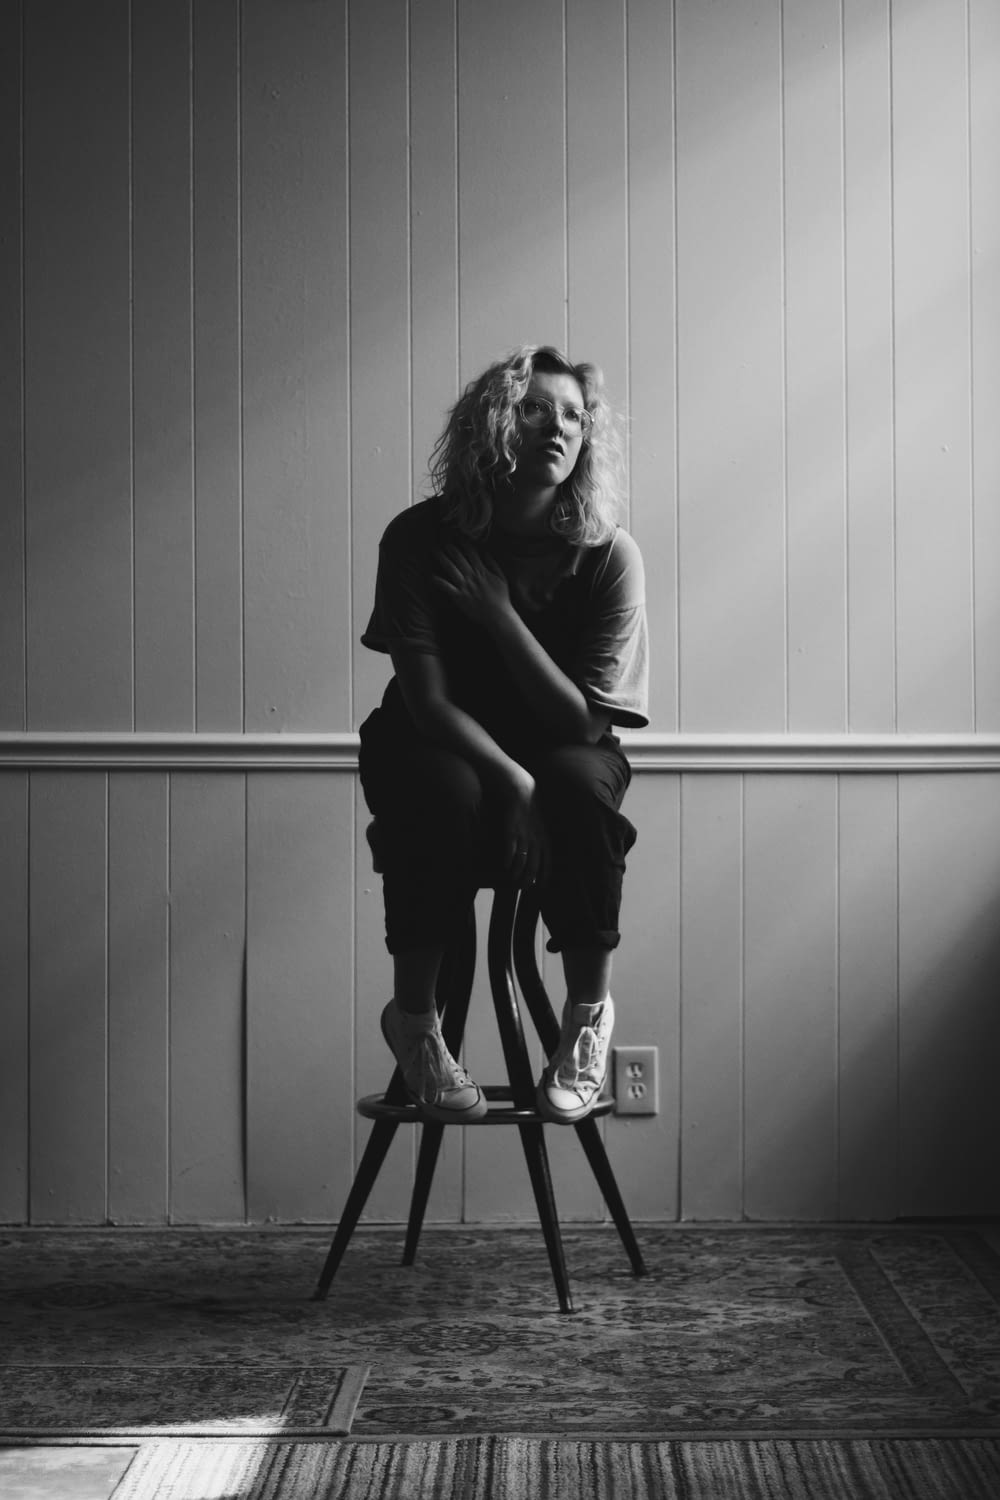 grayscale photography of woman sitting on chair